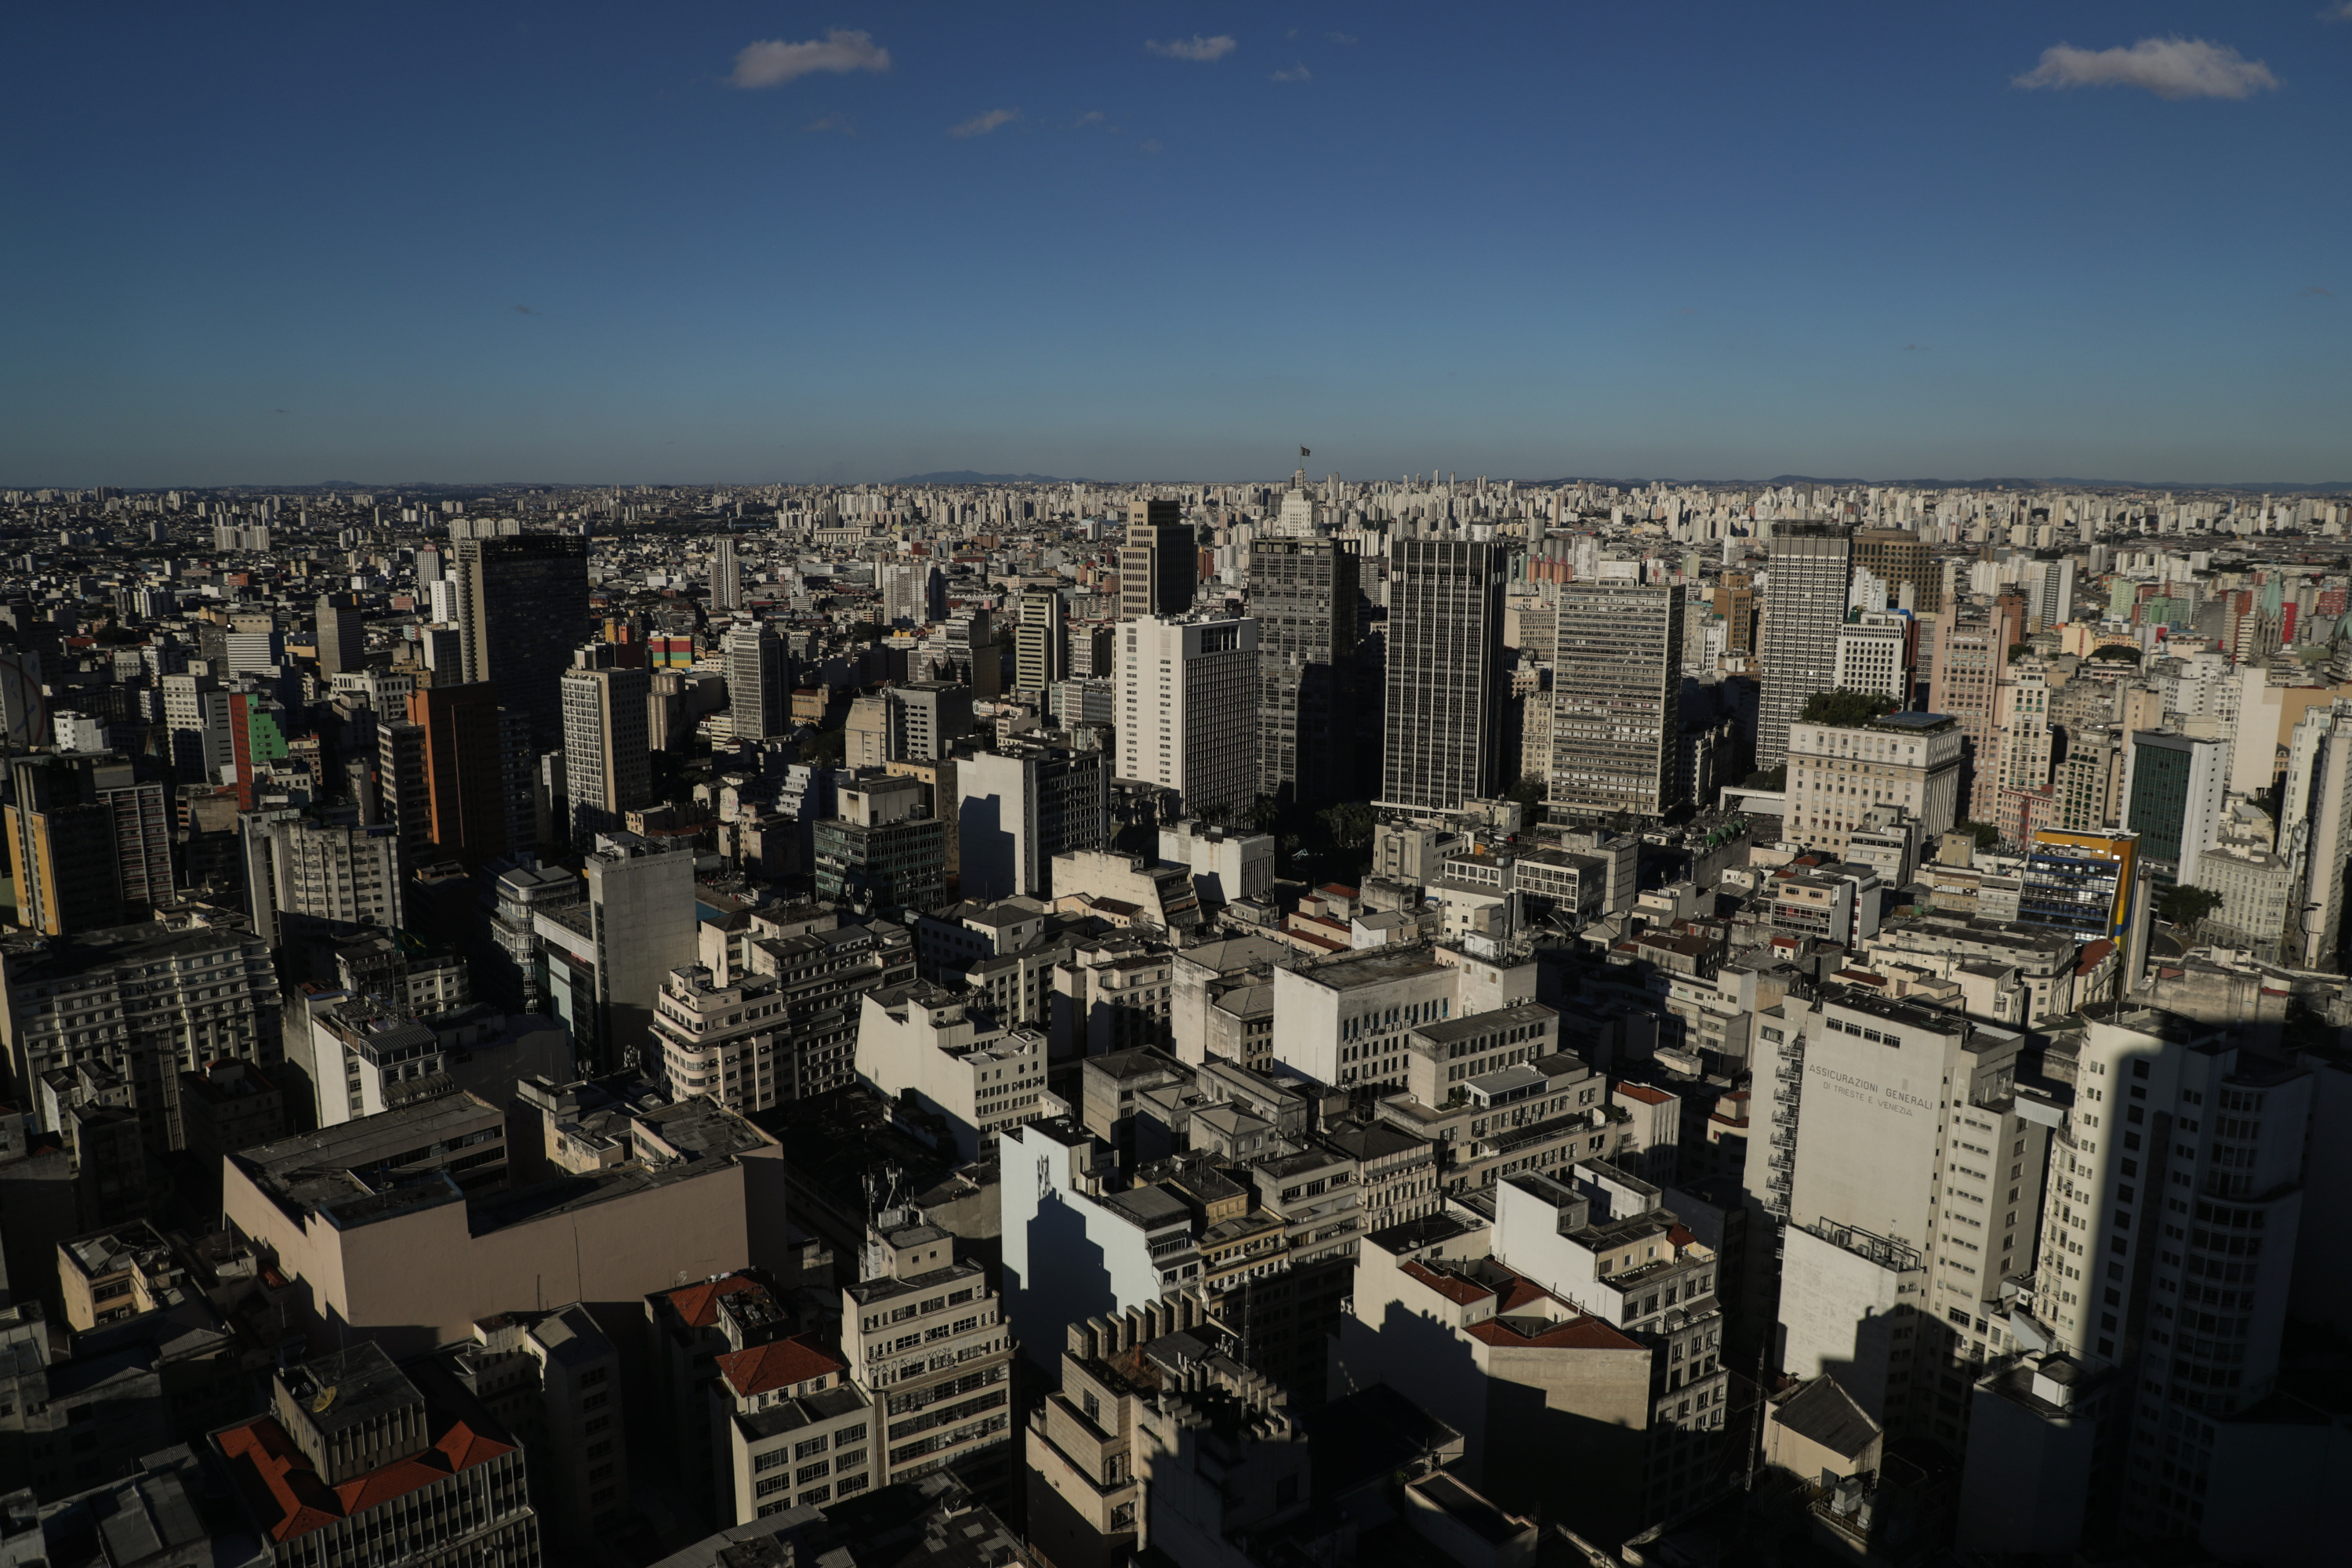 With over 12 million residents, expanses of tall buildings define views of São Paulo, Brazil on Sunday, May 20, 2018.